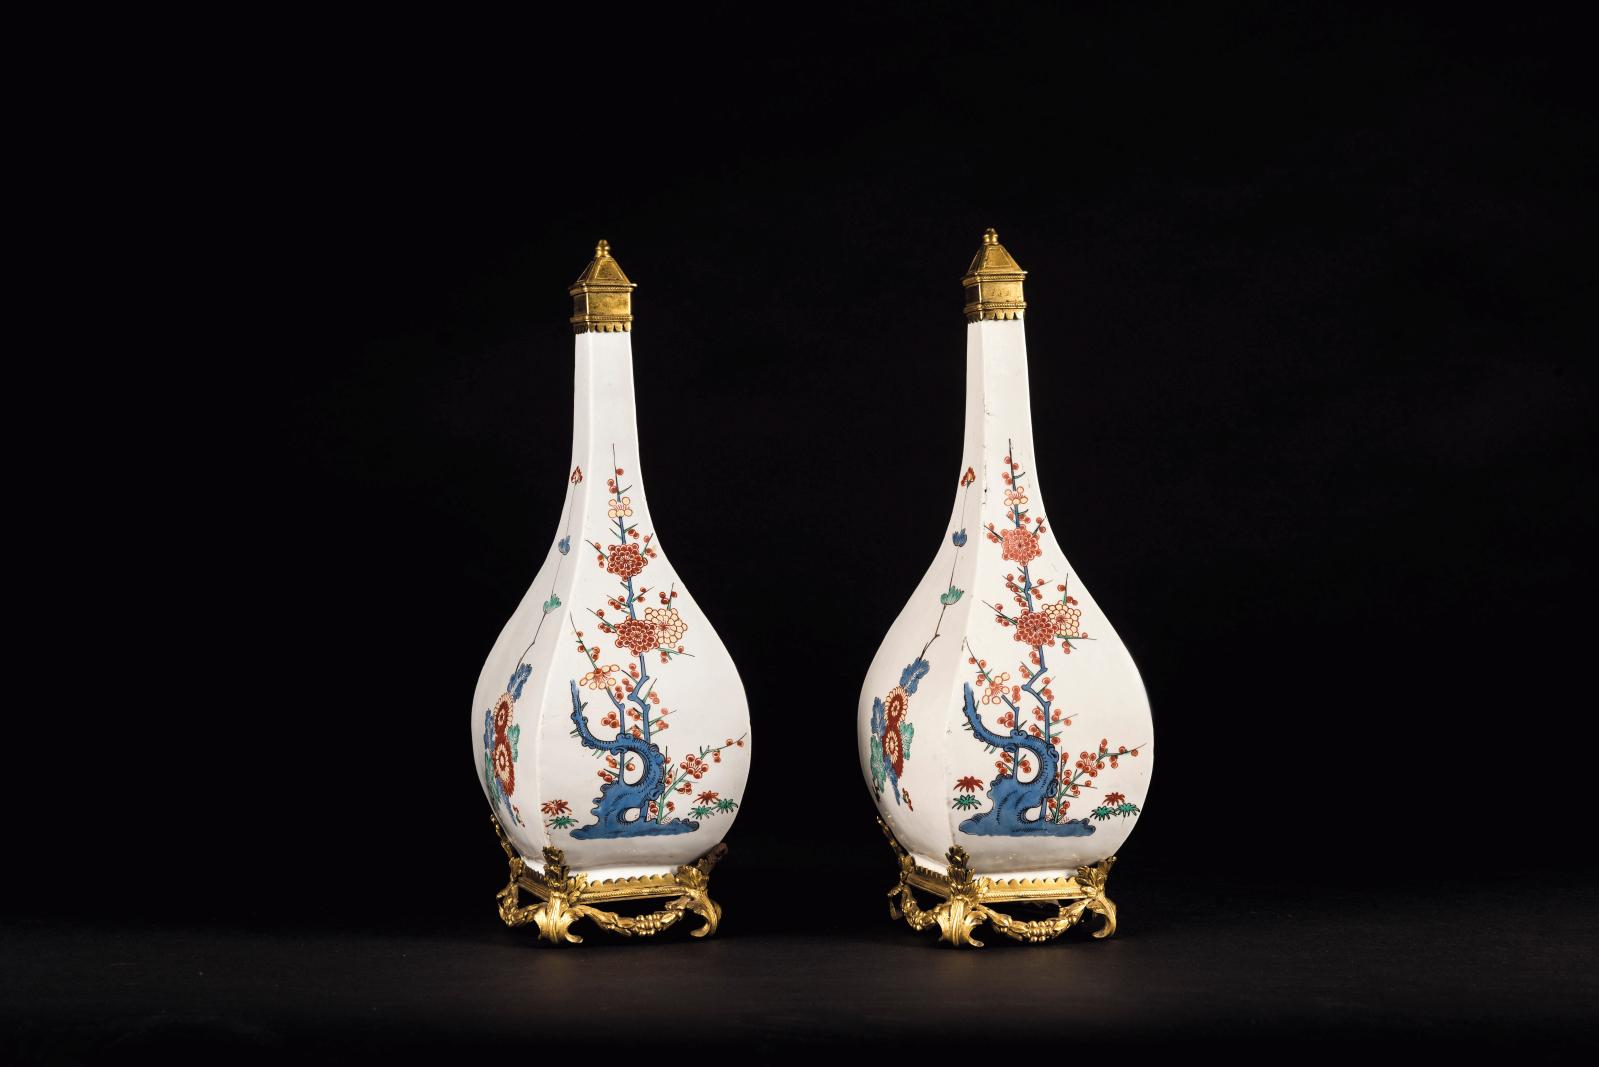 Paire de bouteilles piriformes, vers 1735-1740, porcelaine tendre de Chantilly à décor kakiemon, manufacture de Chantilly, 28 x 9,2 cm, co